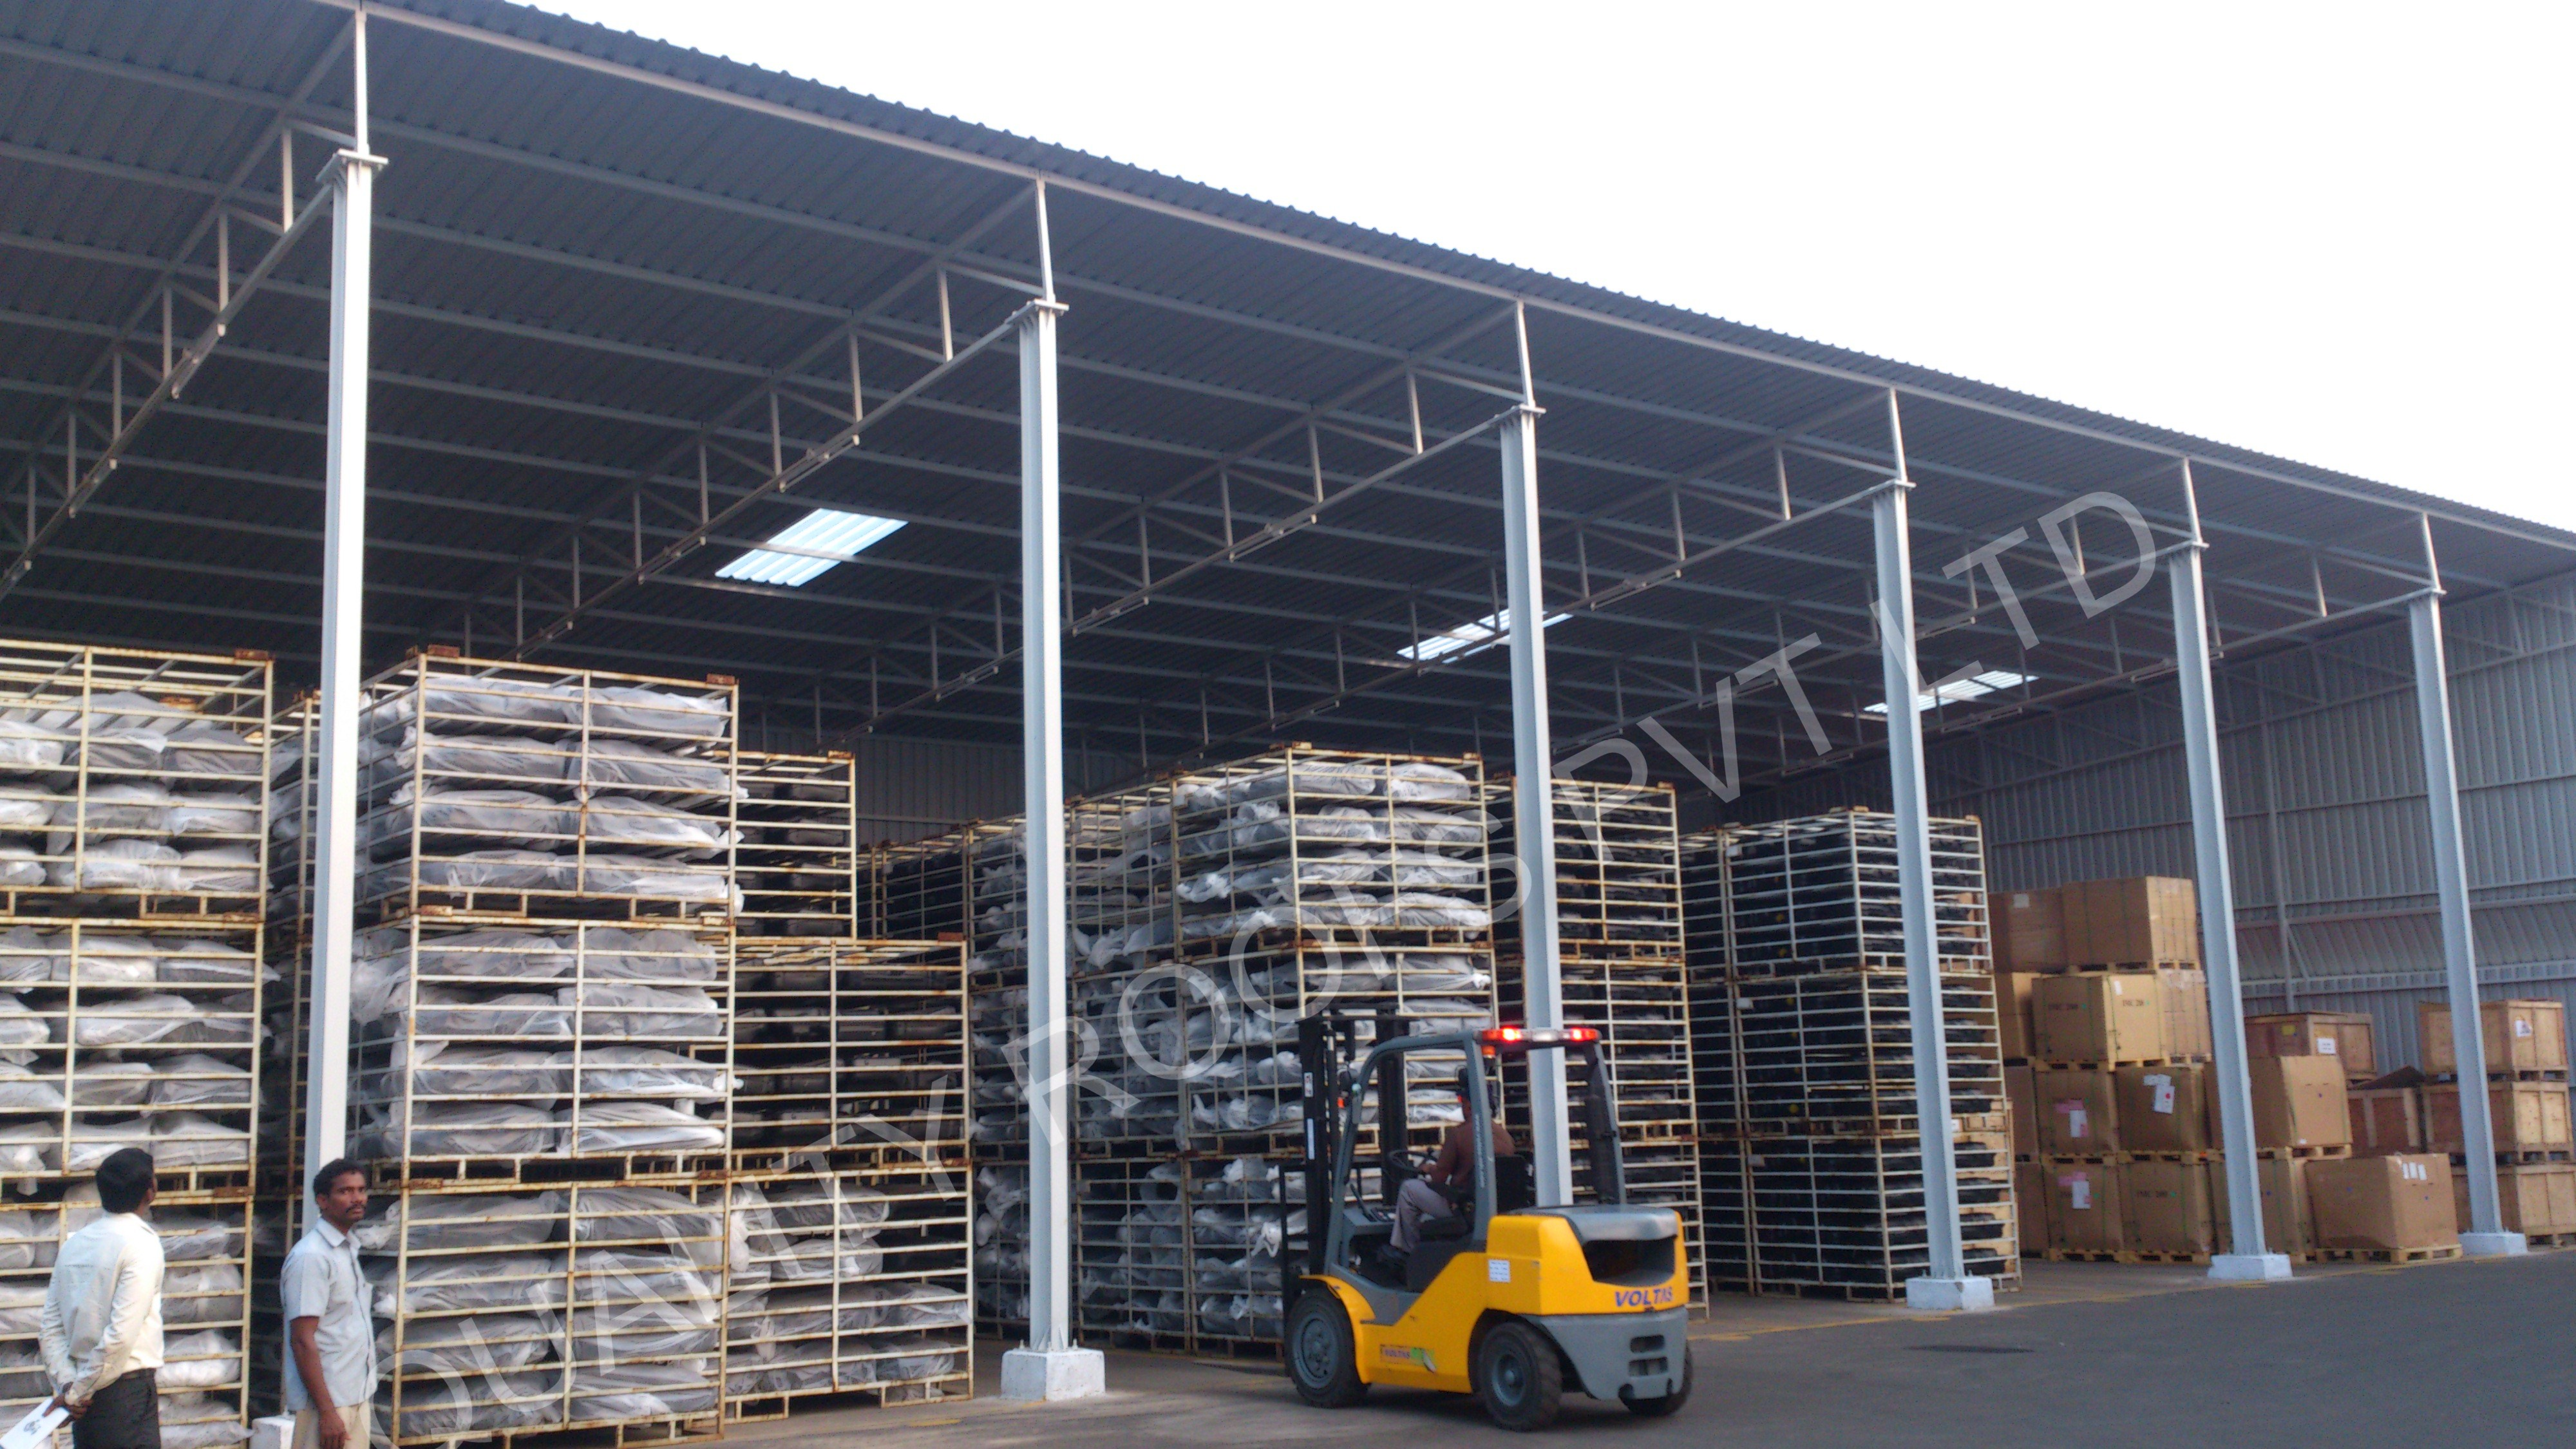 Industrial Shed Manufactures In Chennai   Quality Roofs Pvt Ltd   Industrial Shed Construction In Chennai,Industrial Shed Manufactures In Chennai,Industrial Shed Manufactures In Chennai,Industrial Contractors In Chennai,Industrial Roofing Services In Chennai   - GL57392